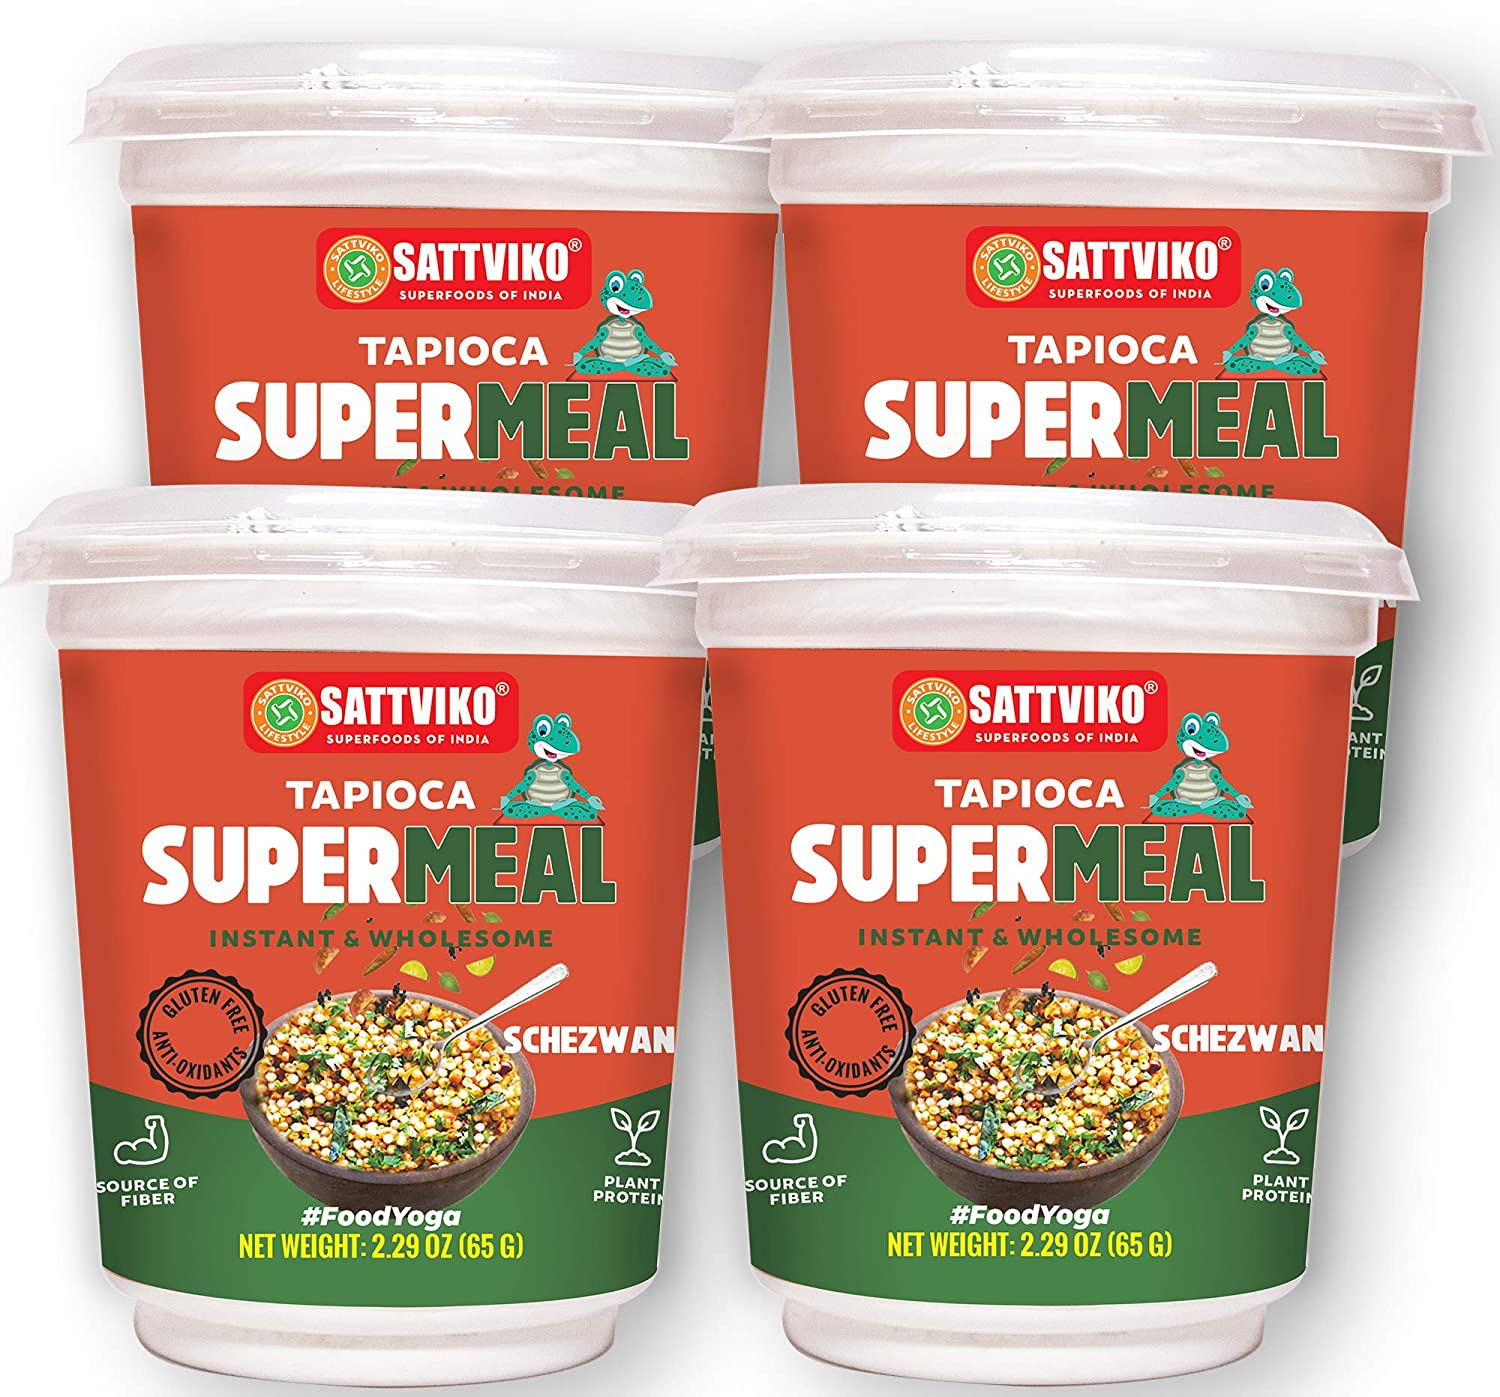 Sattviko Instant Tapioca (Sabudana) Supermeal - Indian Food Ready to eat meal | Ready to eat meal | Vegetarian Food | Vegan Meals | Plant based food | Instant Meals | Foodyoga- Flavor Schezwan, 4 Cups